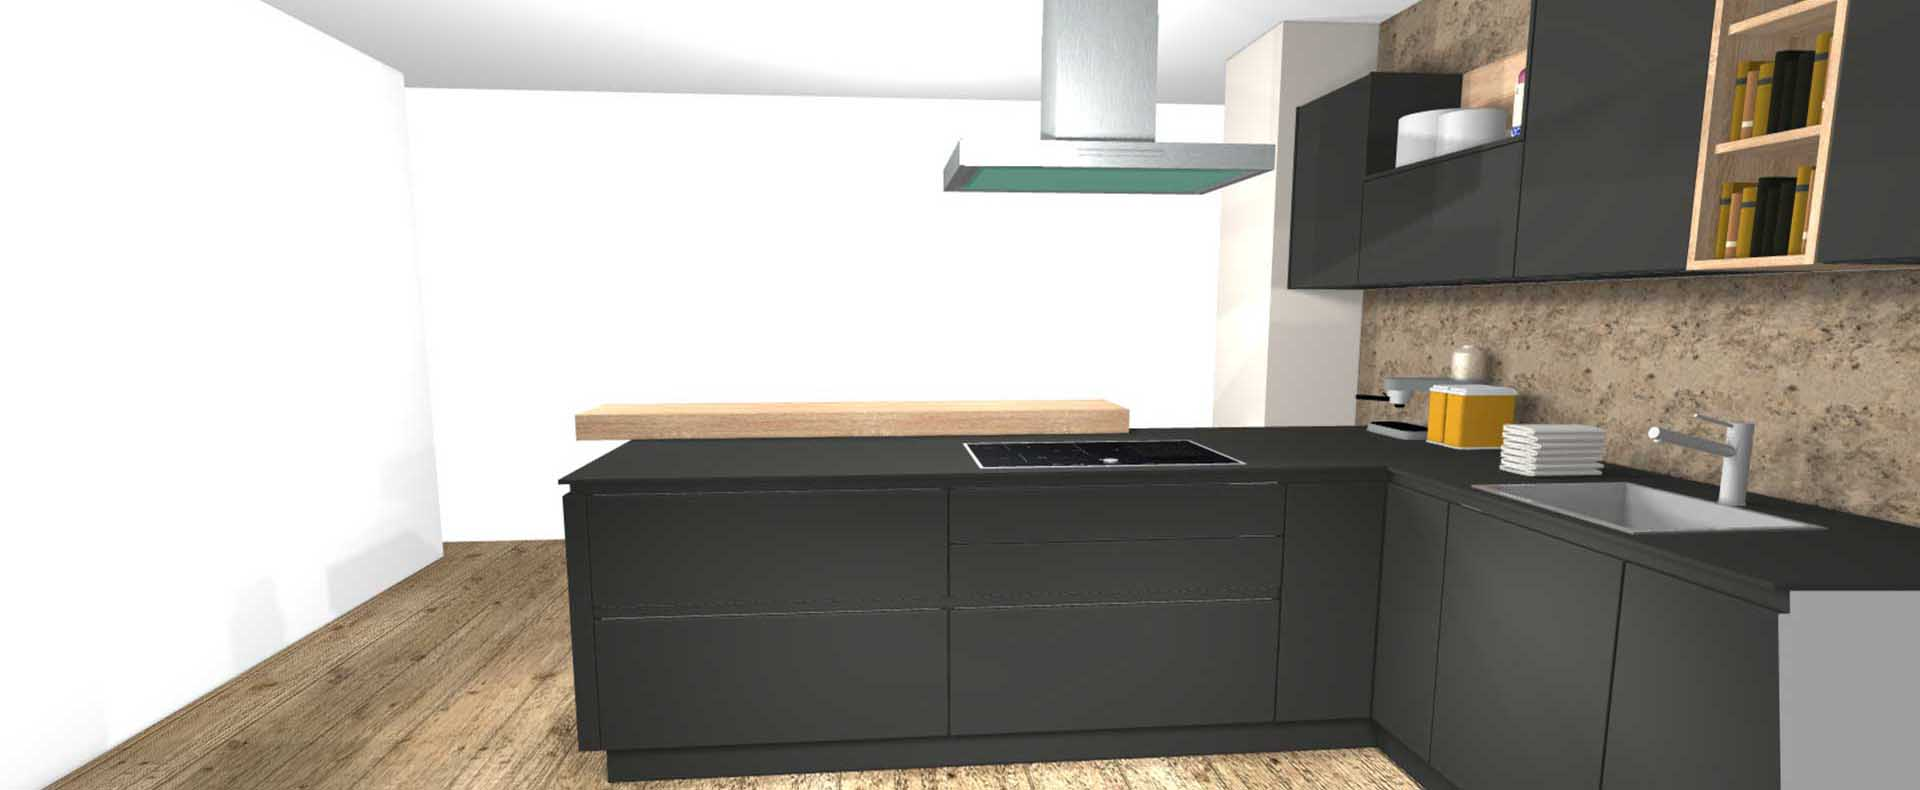 k chenplanung in t nisvorst nahe im raum krefeld m nchengladbach kempen m bel klauth. Black Bedroom Furniture Sets. Home Design Ideas